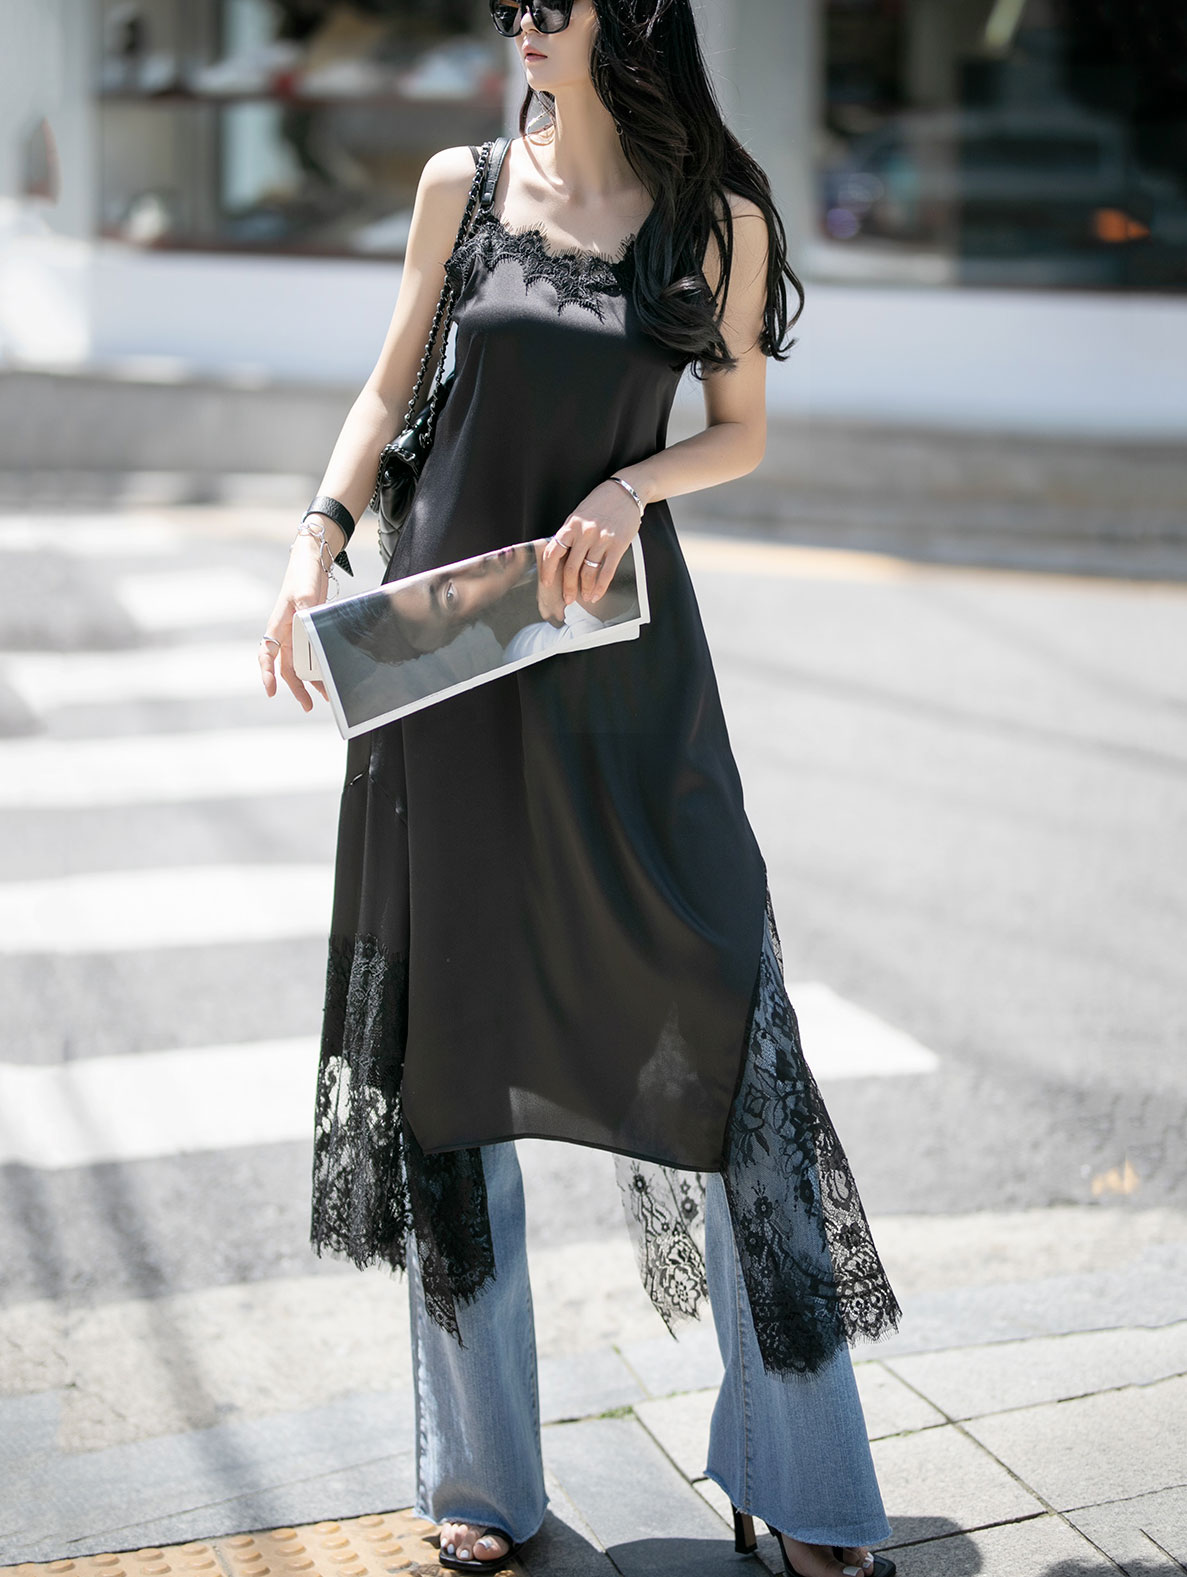 D4040 Satin Lace Sleeveless Dress (2nd REORDER)